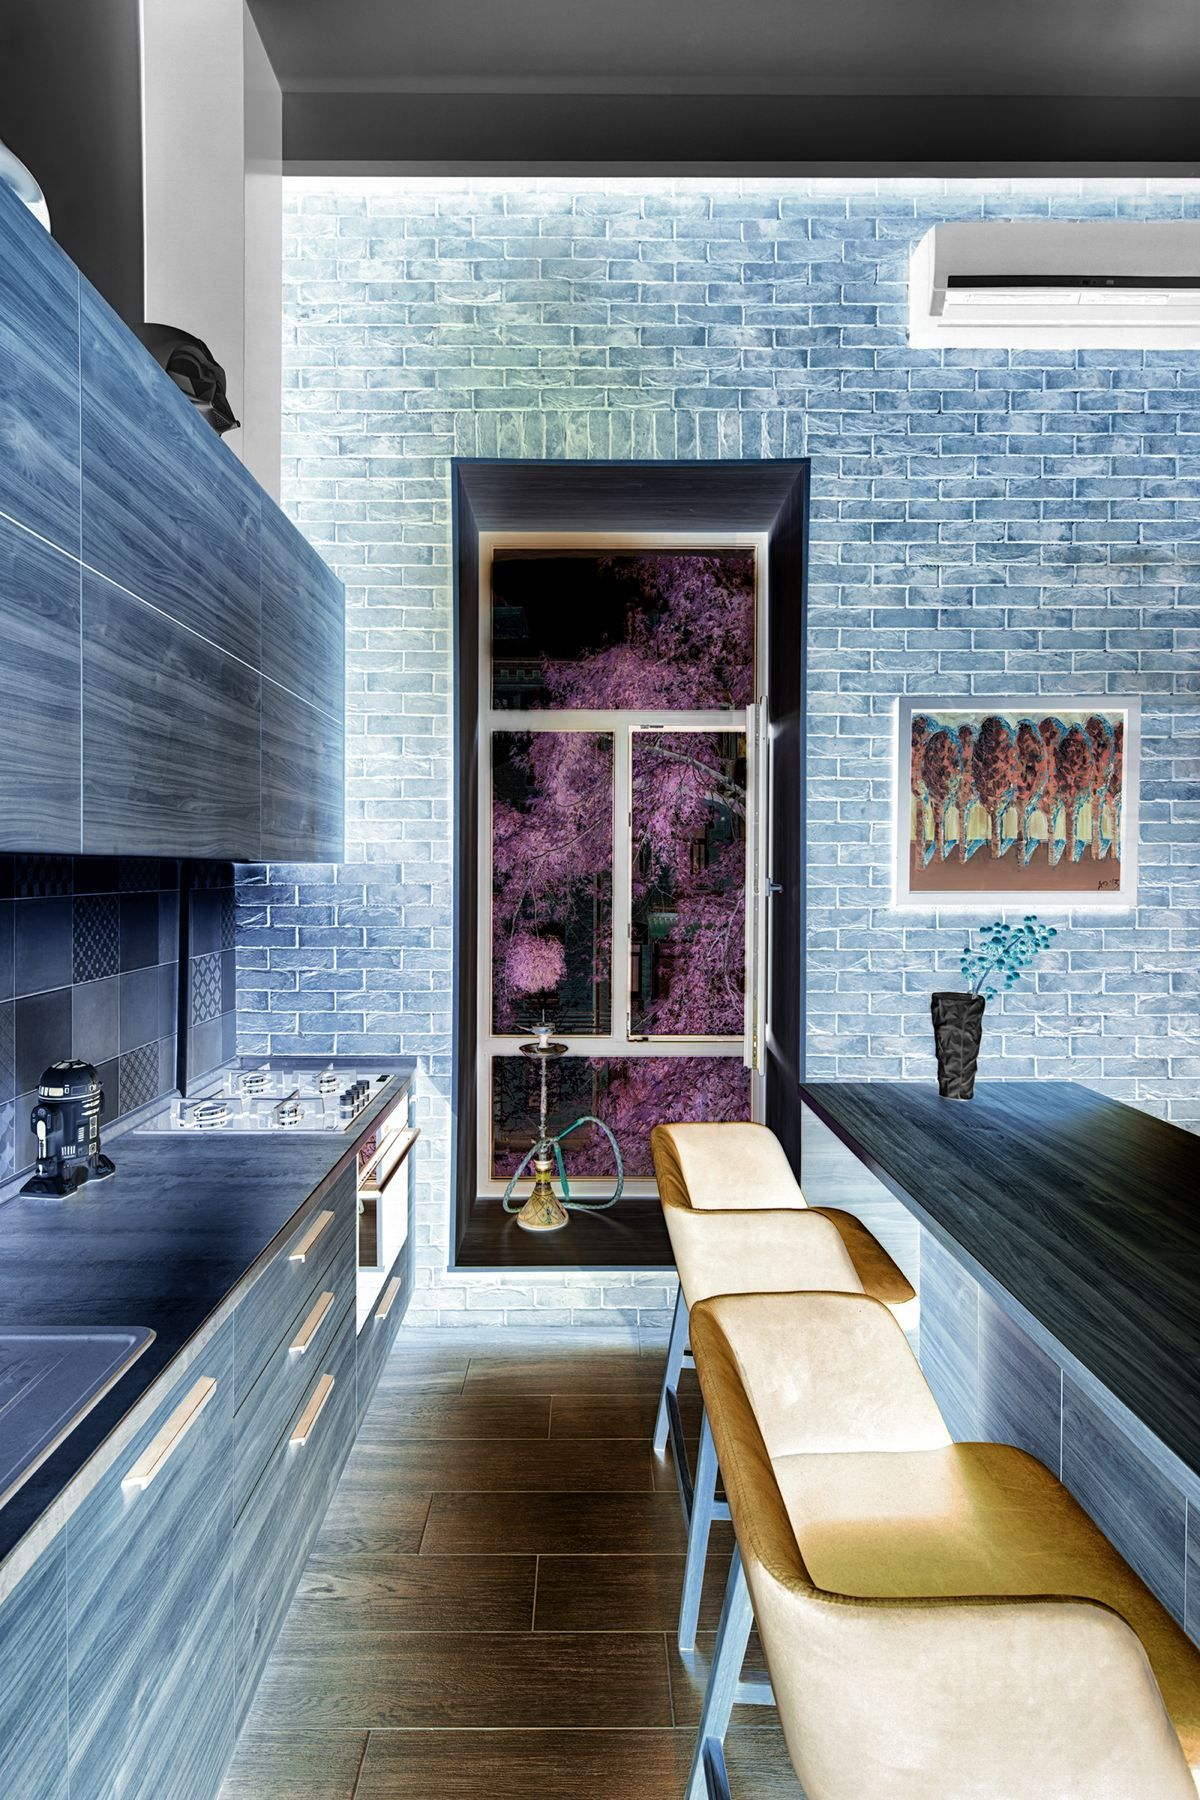 Small apartments offer a homely haven from the outside world u but